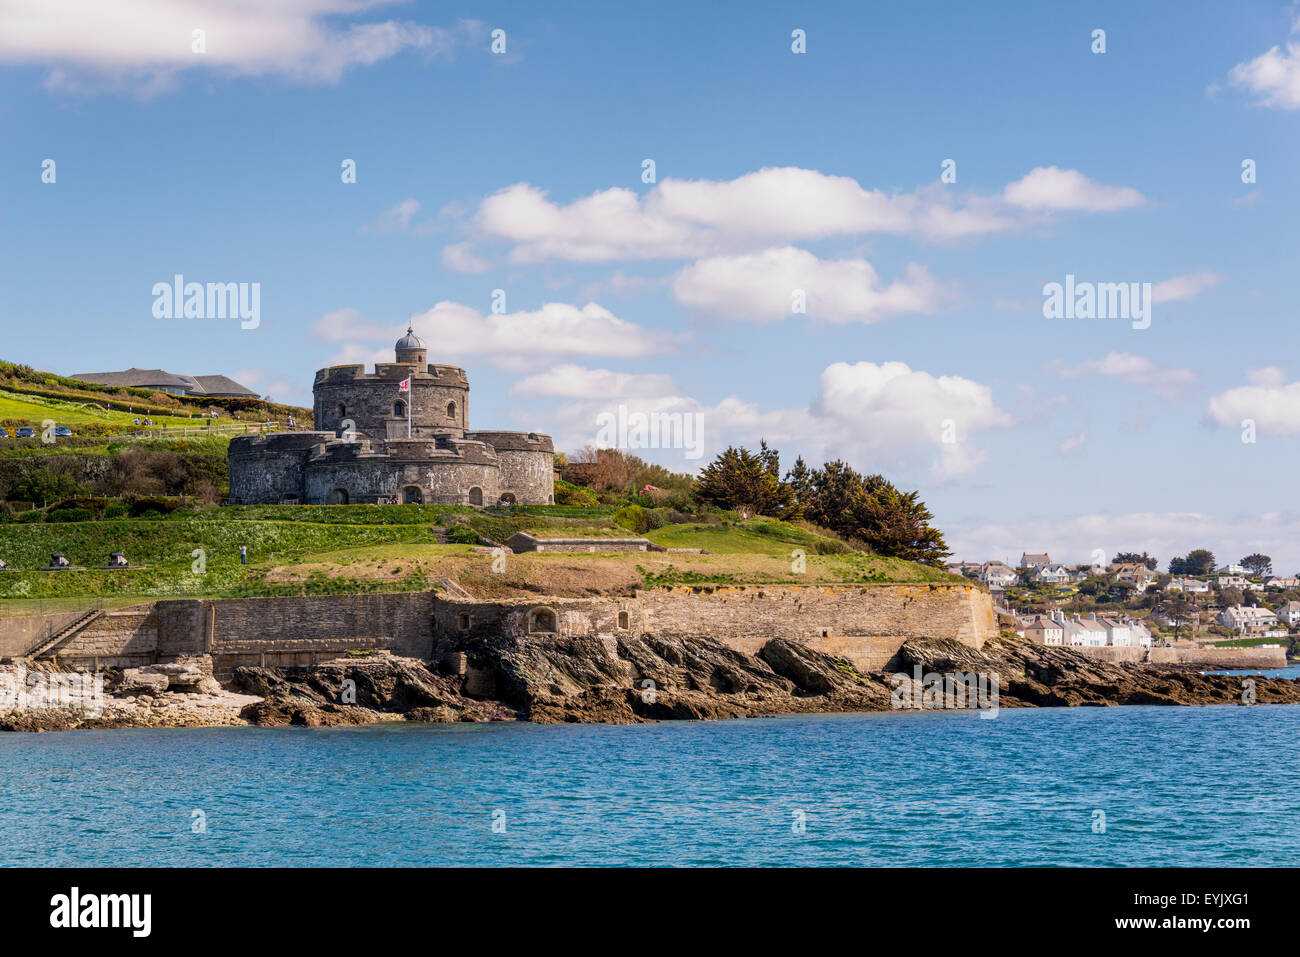 St Mawes castle on the Fal estuary built by Henry VIII  guarding the anchorage of Carrick Roads - Stock Image